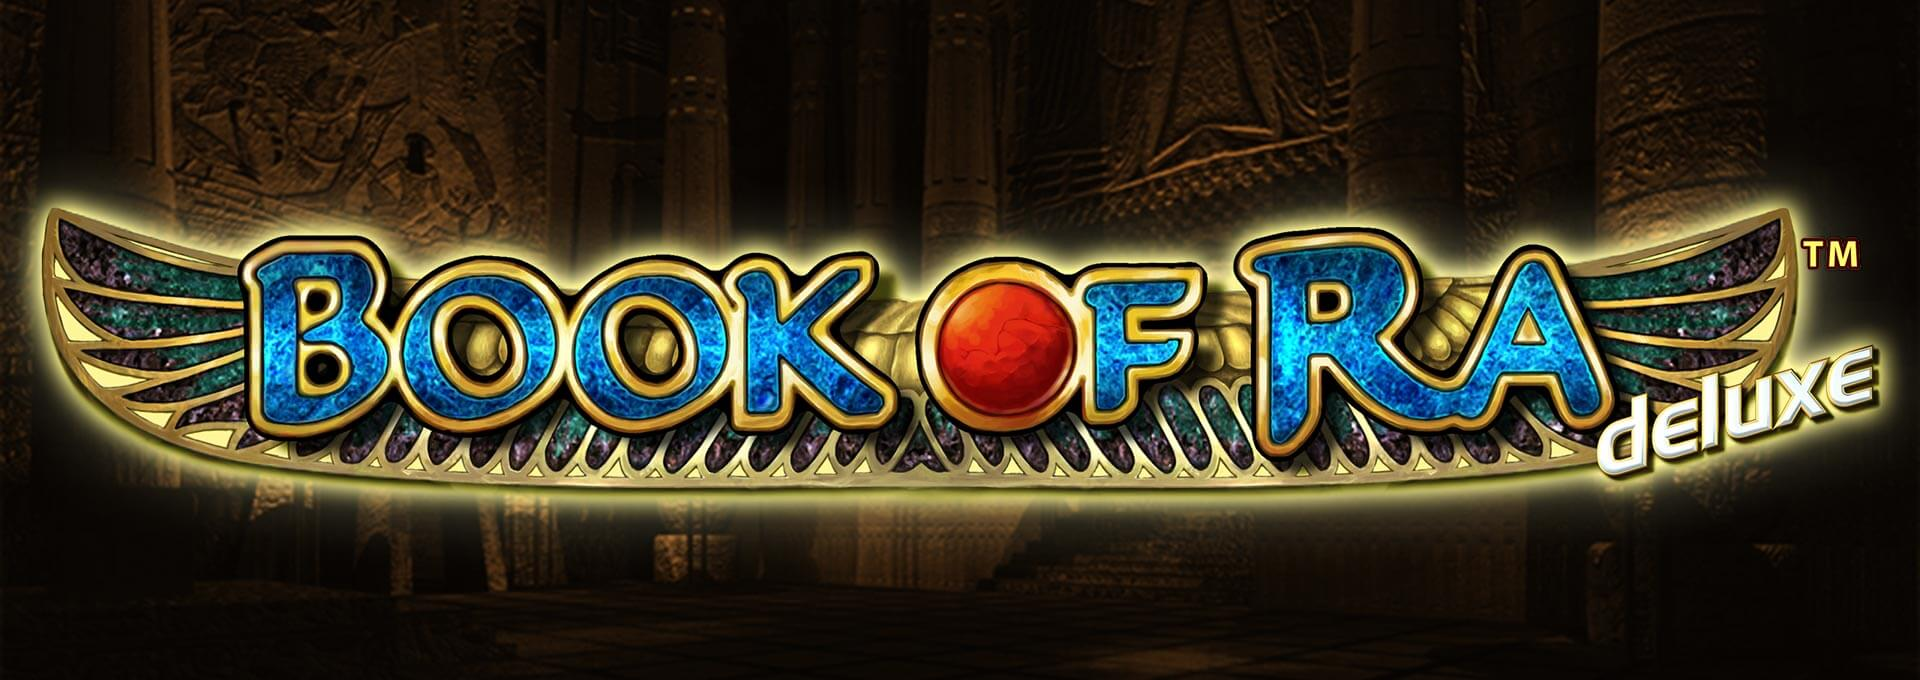 euro casino online slots book of ra free download